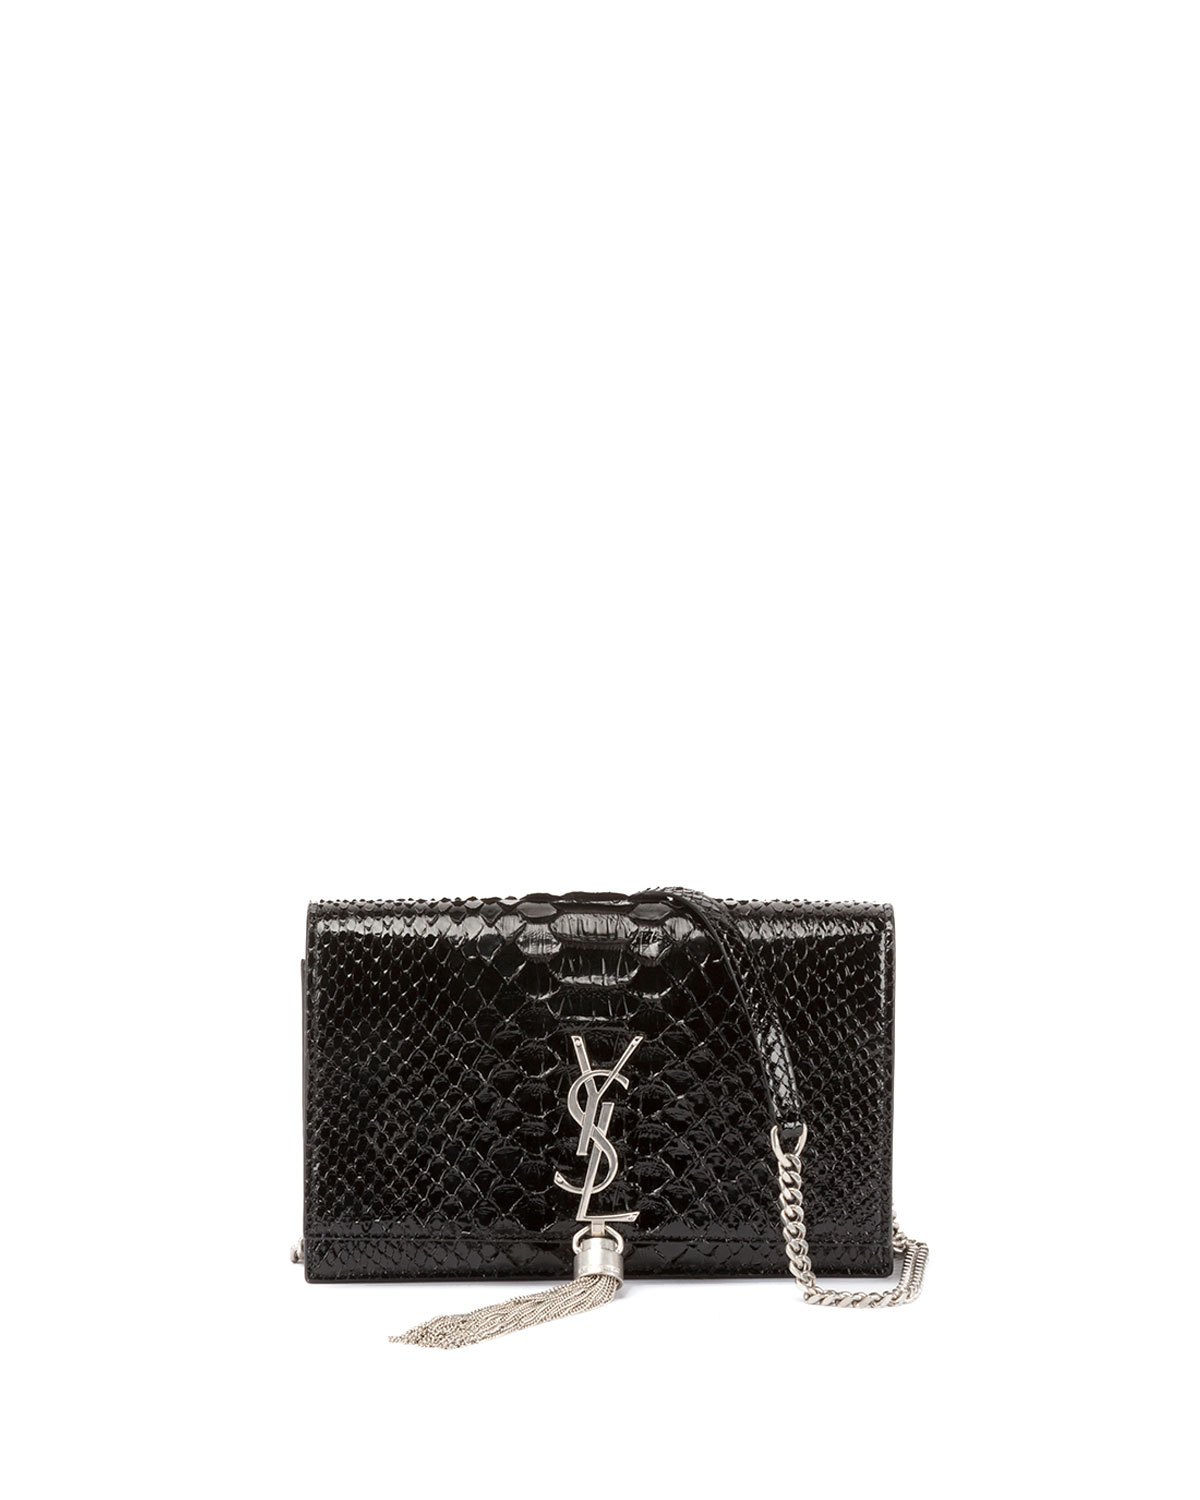 Saint Laurent Kate Monogram YSL Small Matte Metallic Python Tassel ... 5d2552d525866